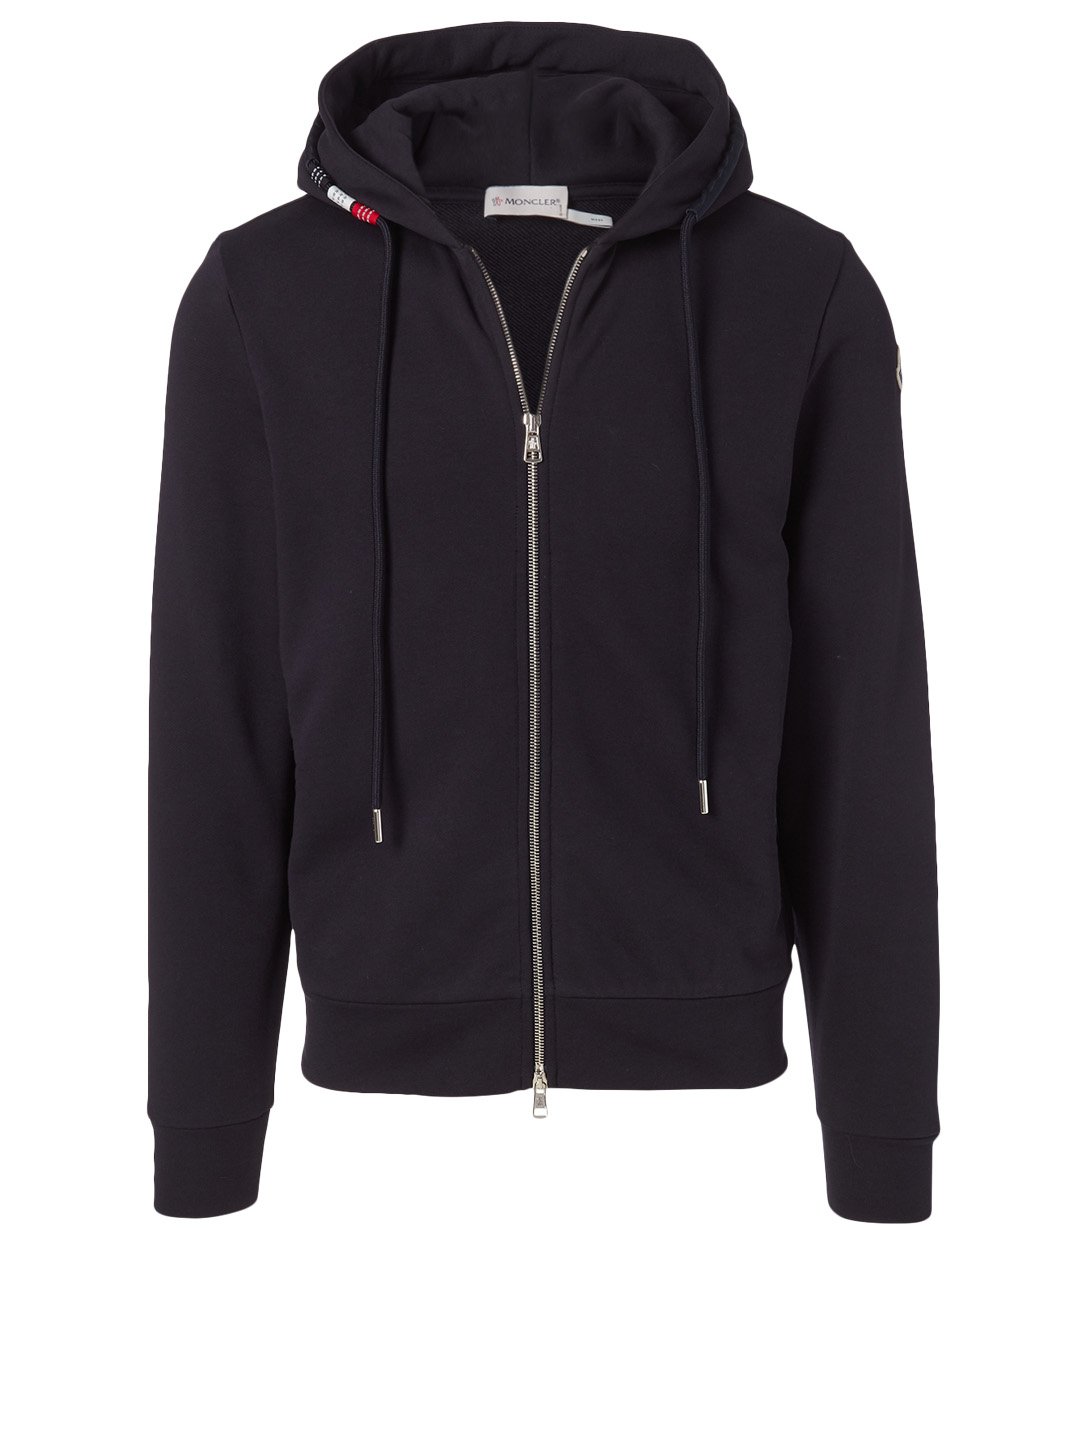 MONCLER Cotton Zip Hoodie Men's Blue